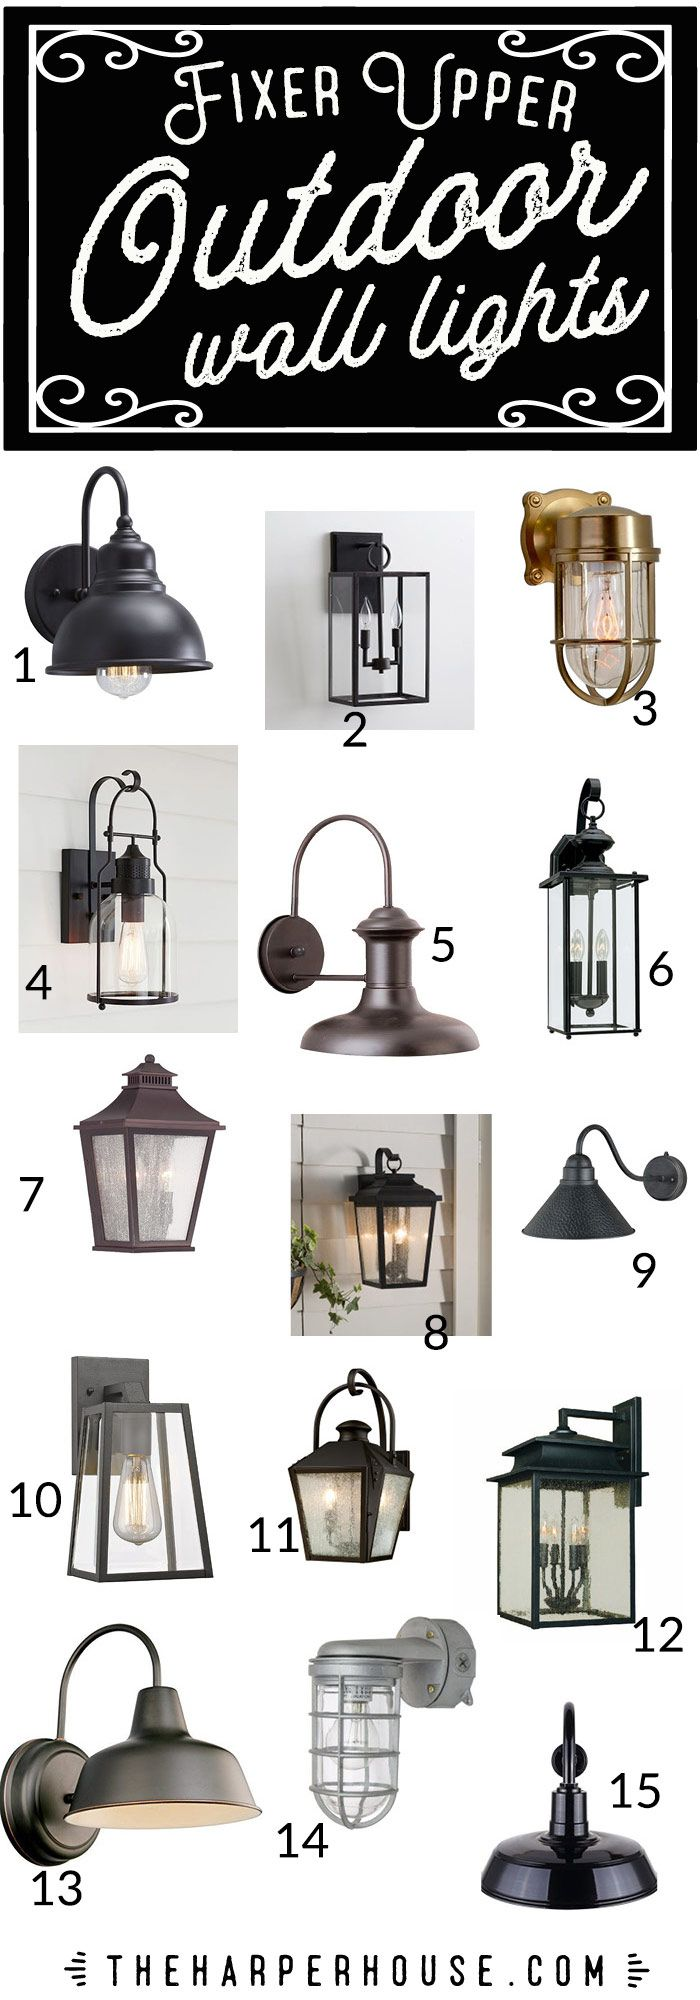 Outdoor Wall Lights Fixer Upper Style Farmhouse Outdoor Lighting Fixer Upper Lighting Farmhouse Style Lighting